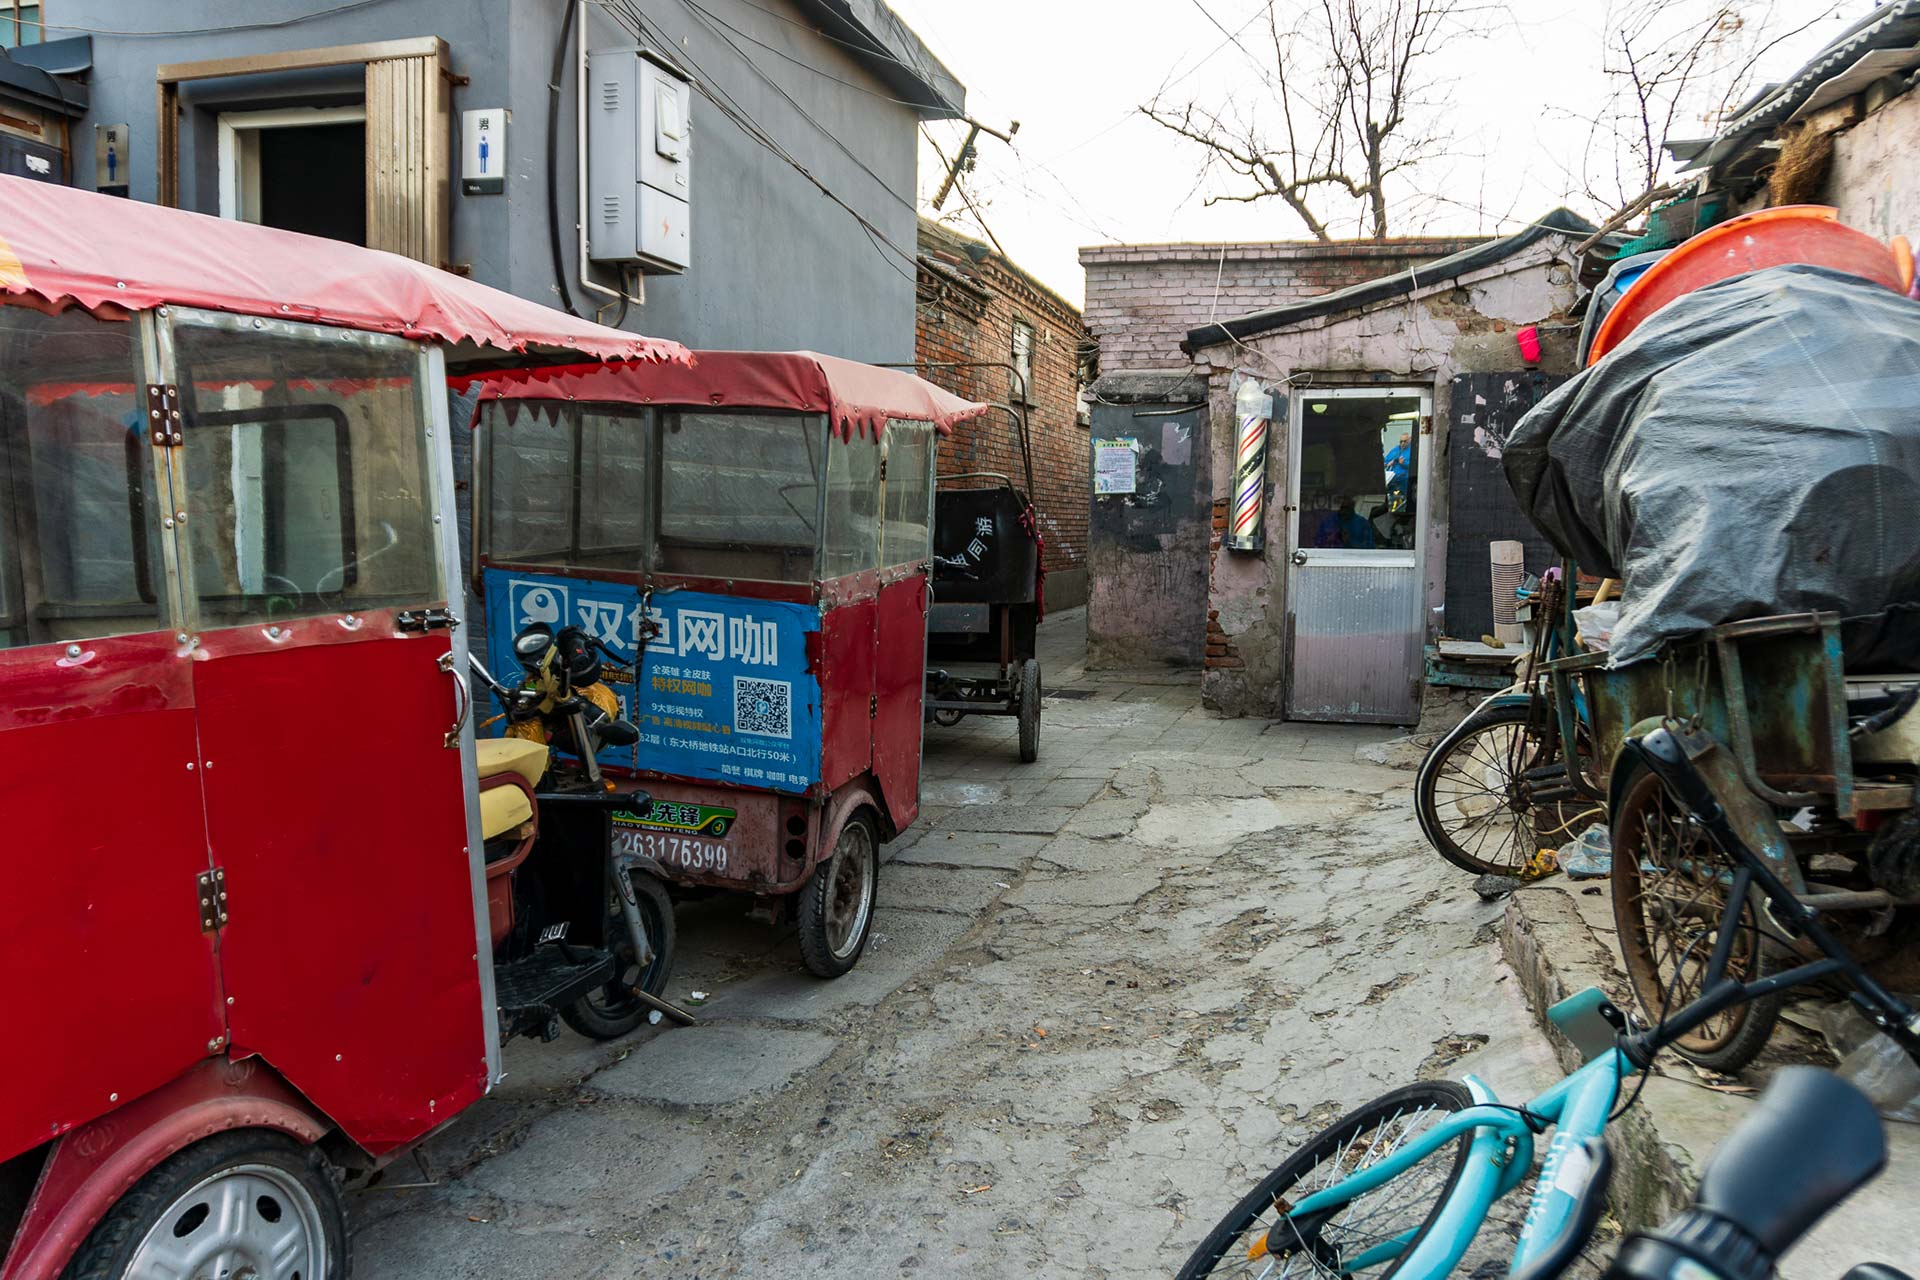 Hutong Barbershop surrounded by tuk tuks, bikes and junk